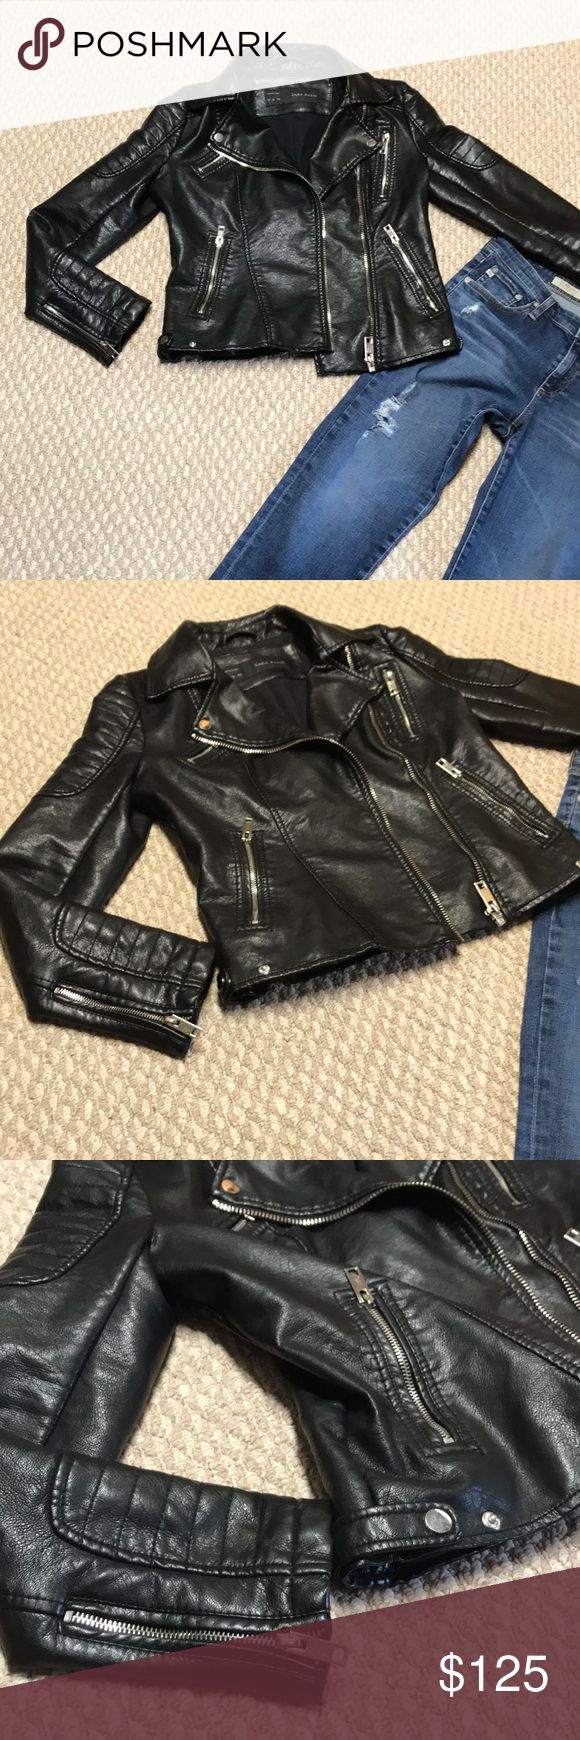 Zara Motorcycle jacket medium EUC!! No signs of wear of